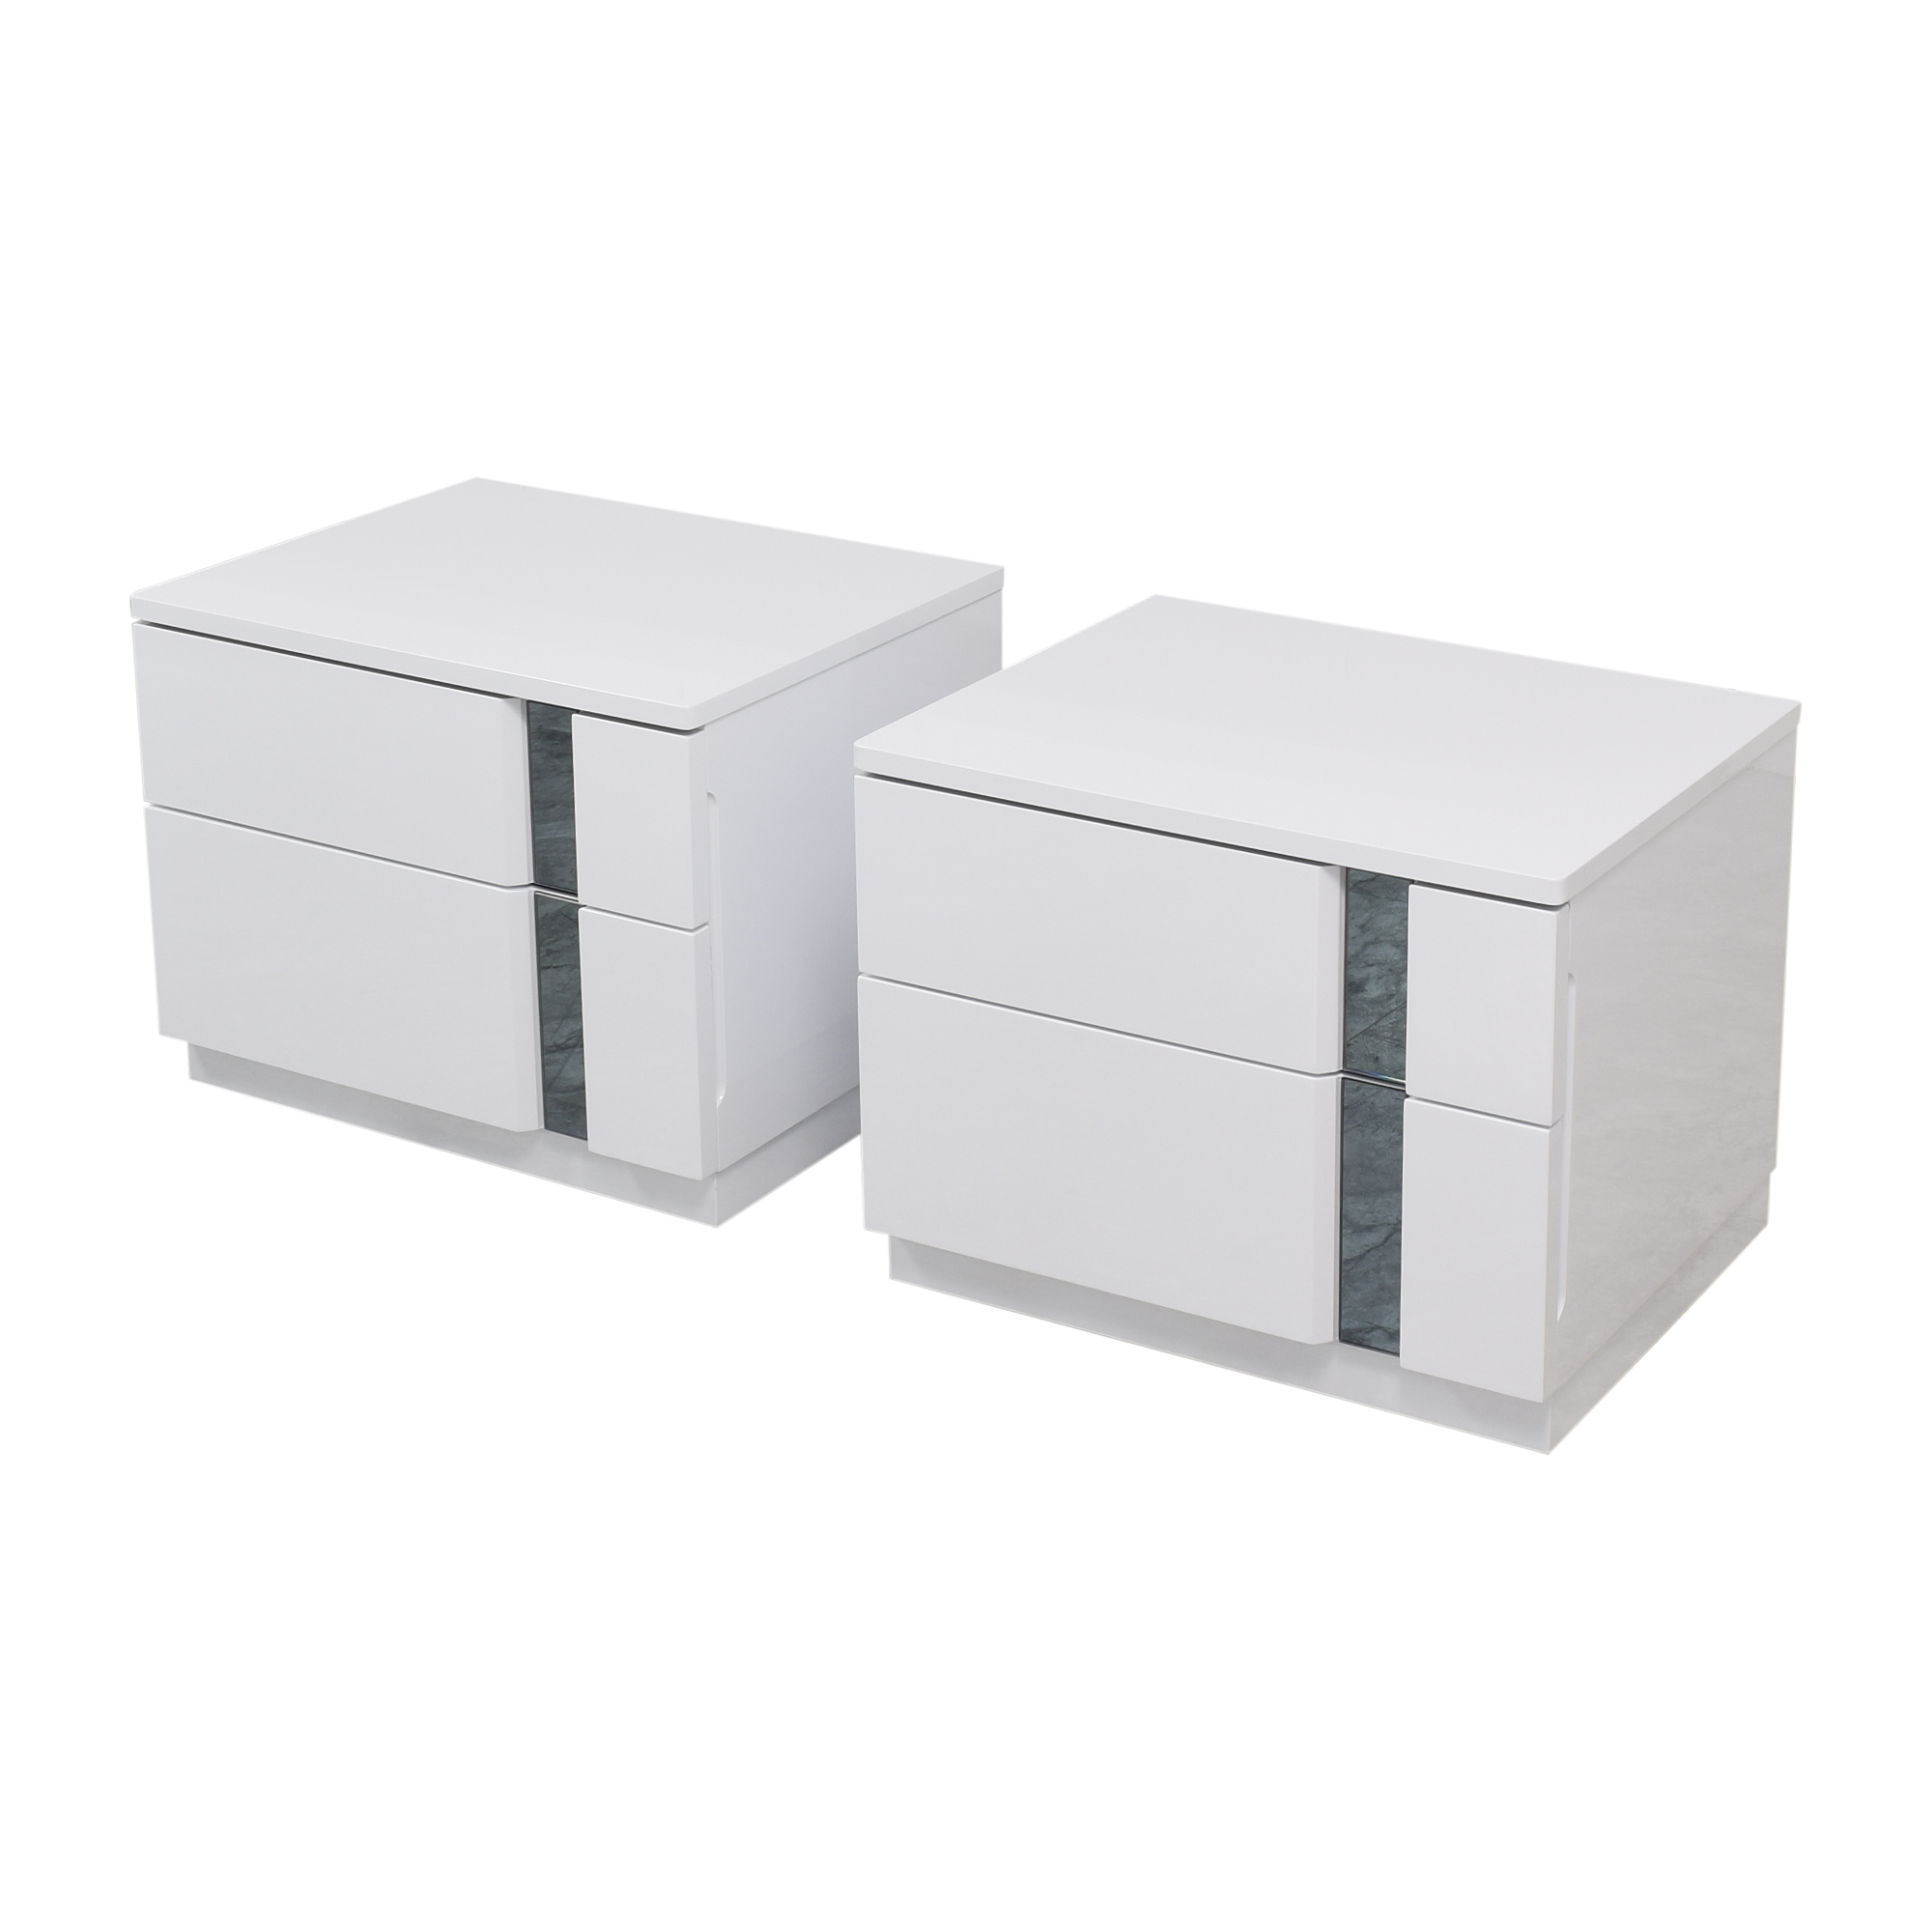 Global Furniture Modern Two Drawer Nightstands / End Tables